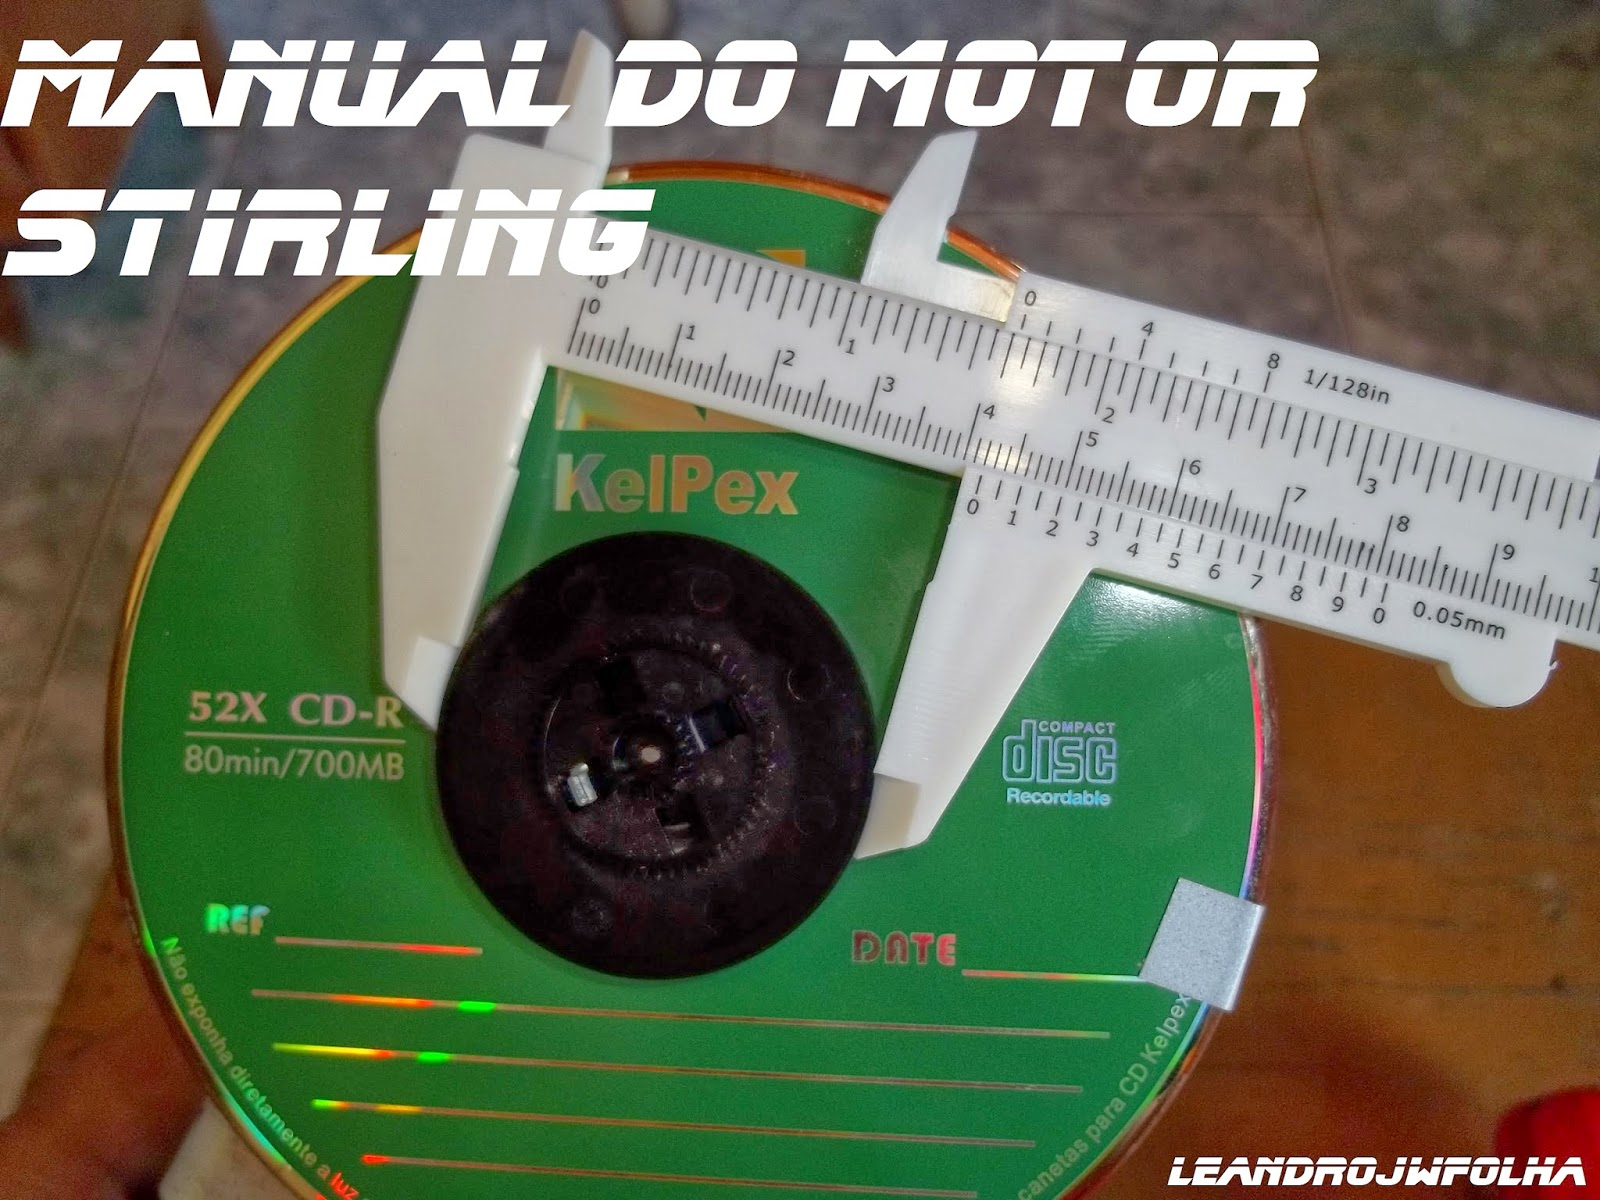 Manual do motor Stirling, 42 mm é o diâmetro da polia do motor